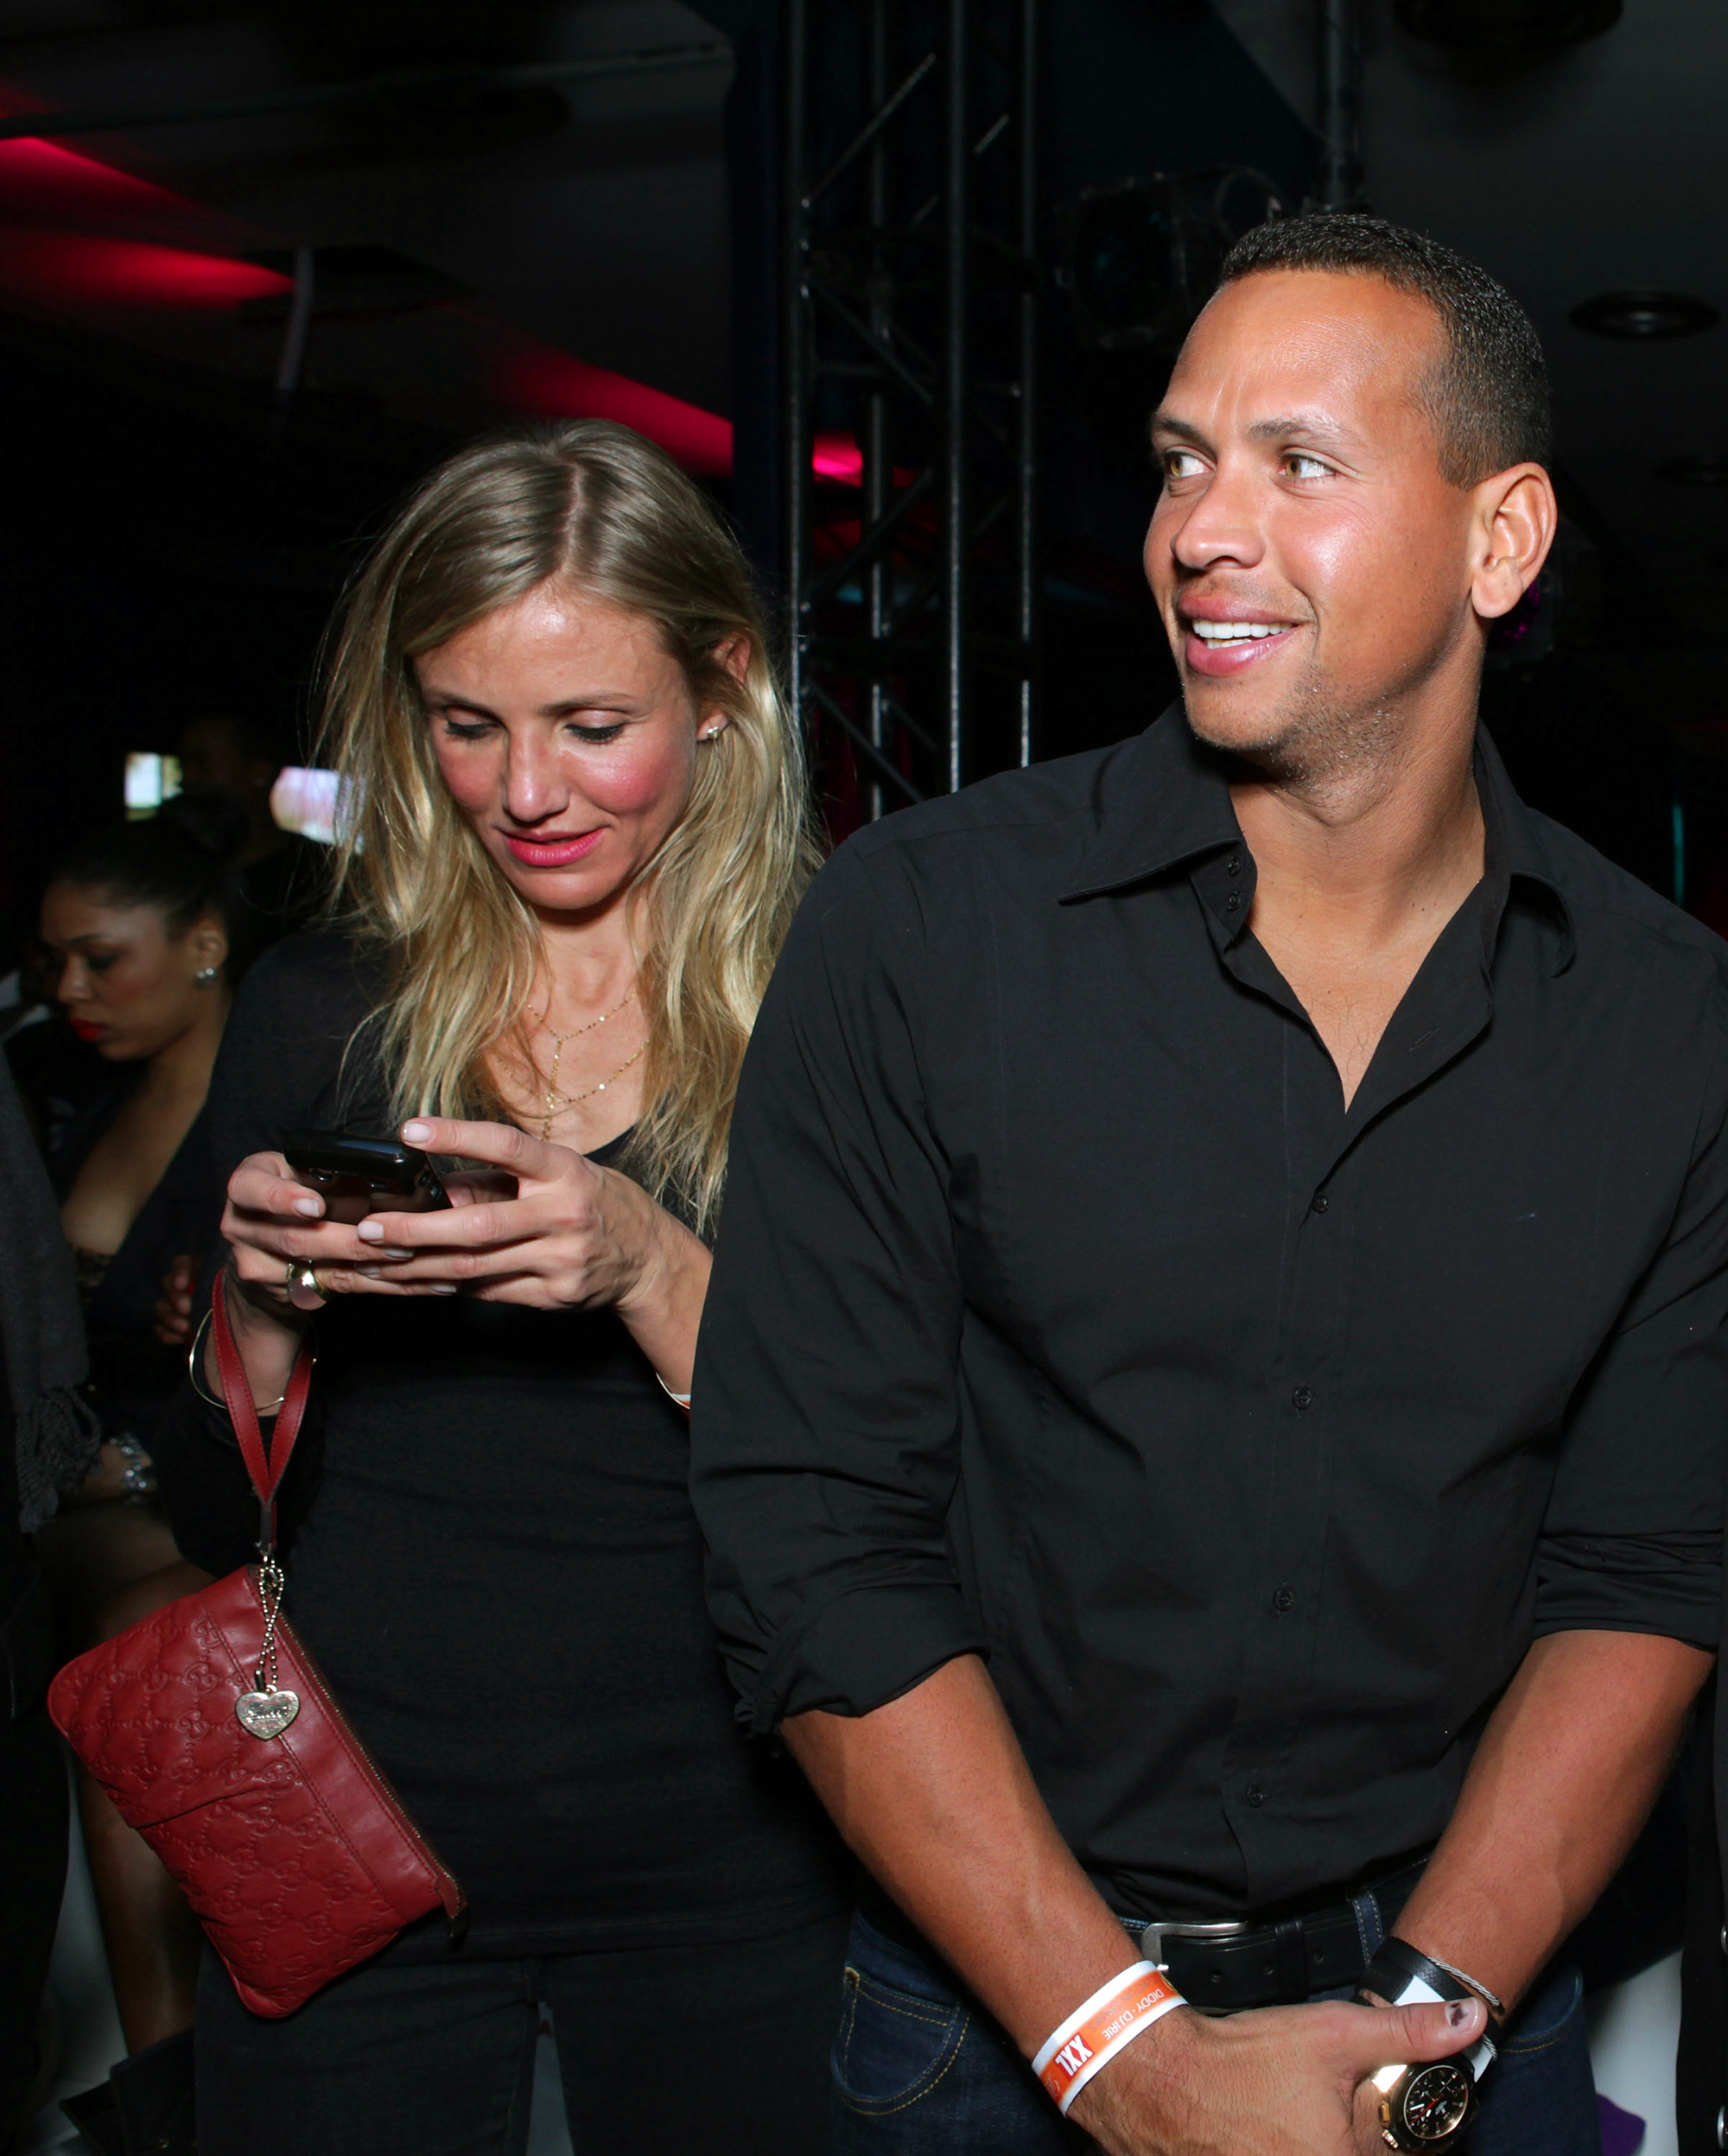 hot rebound romances - The Yankees slugger moved from Kate Hudson (they split in December) to Diaz, who was first spotted sneaking out of his NYC apartment in early May.